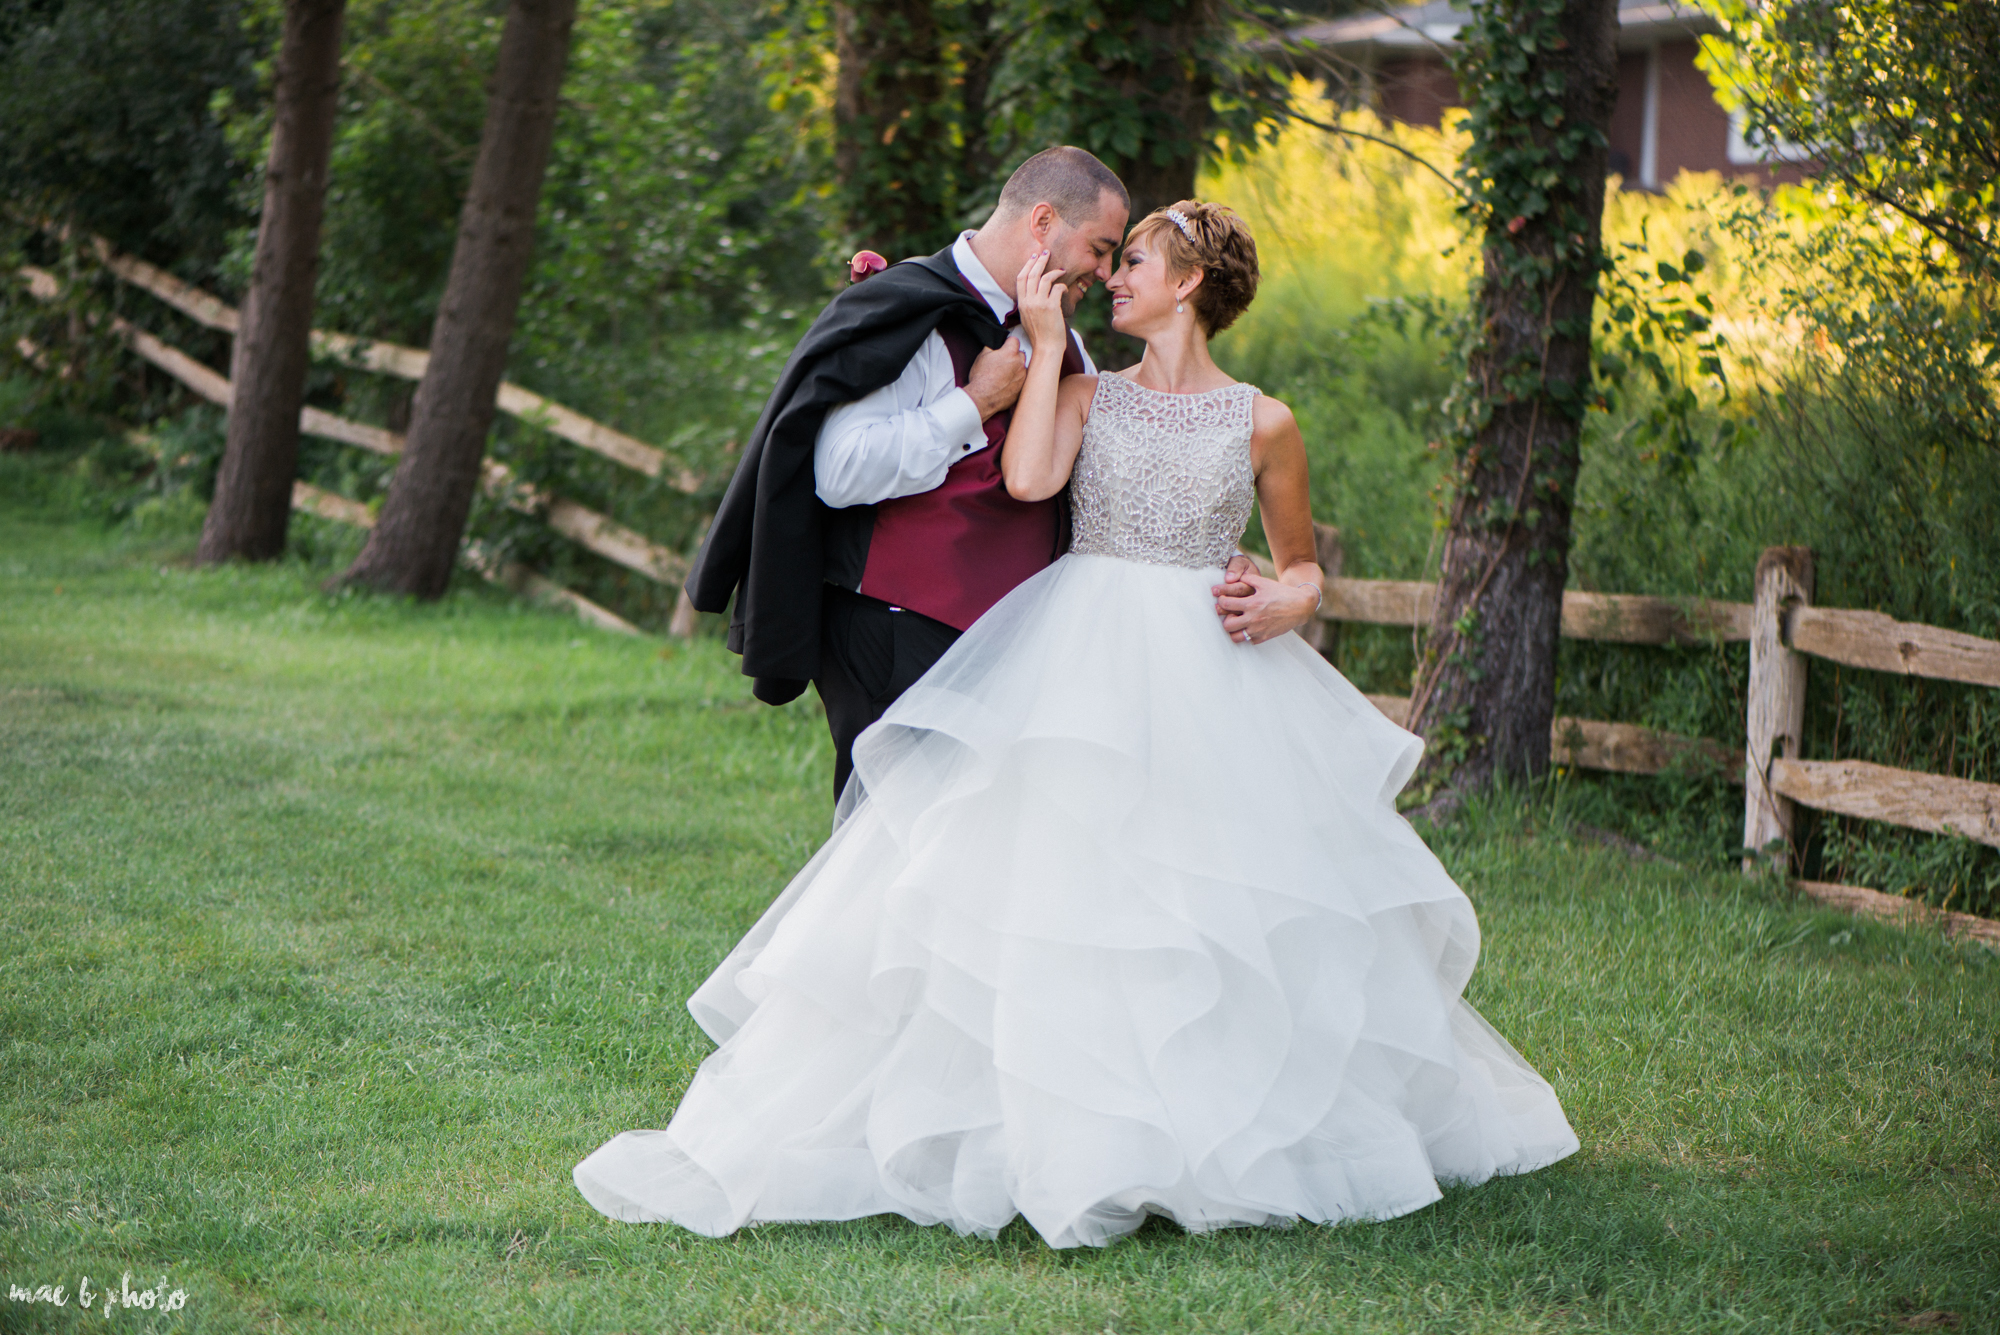 Mary Catherine & Chad's Elegant and Intimate Country Club Wedding at Squaw Creek in Youngstown Ohio by Mae B Photo-80.jpg